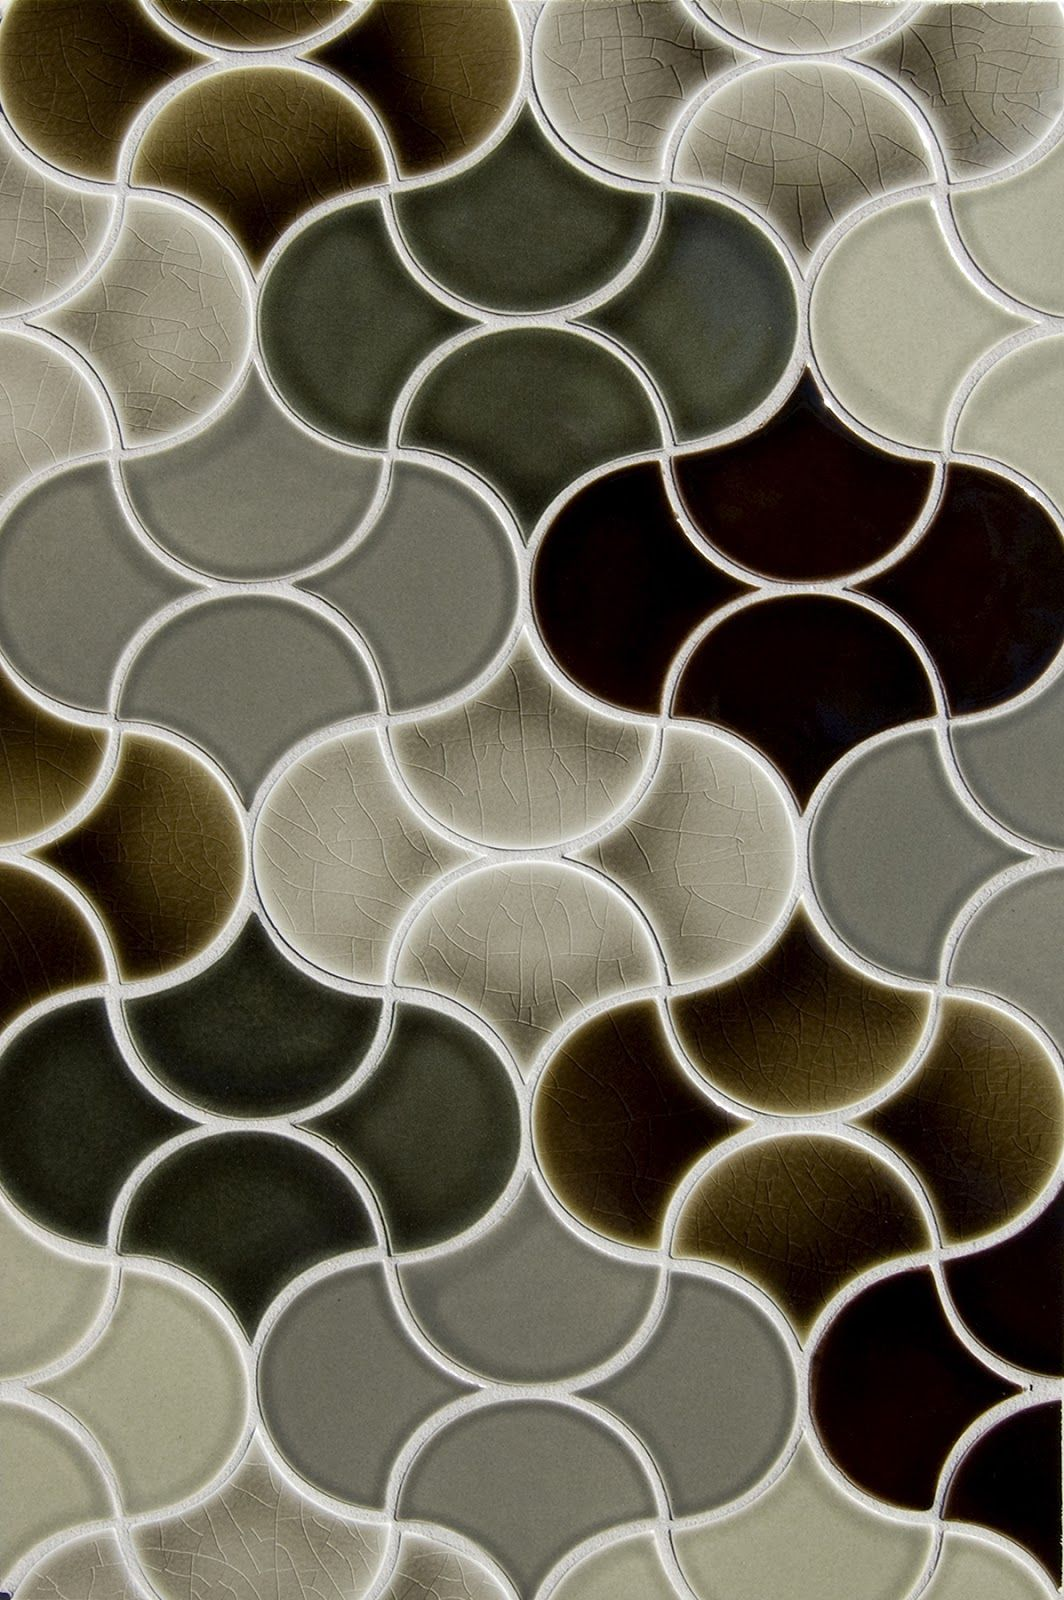 New shapes at pratt larson the small fan handmade tiles can be pratt larson tiles mosaic pattern the small fan glazed ceramic tile is available for custom color matching dailygadgetfo Images